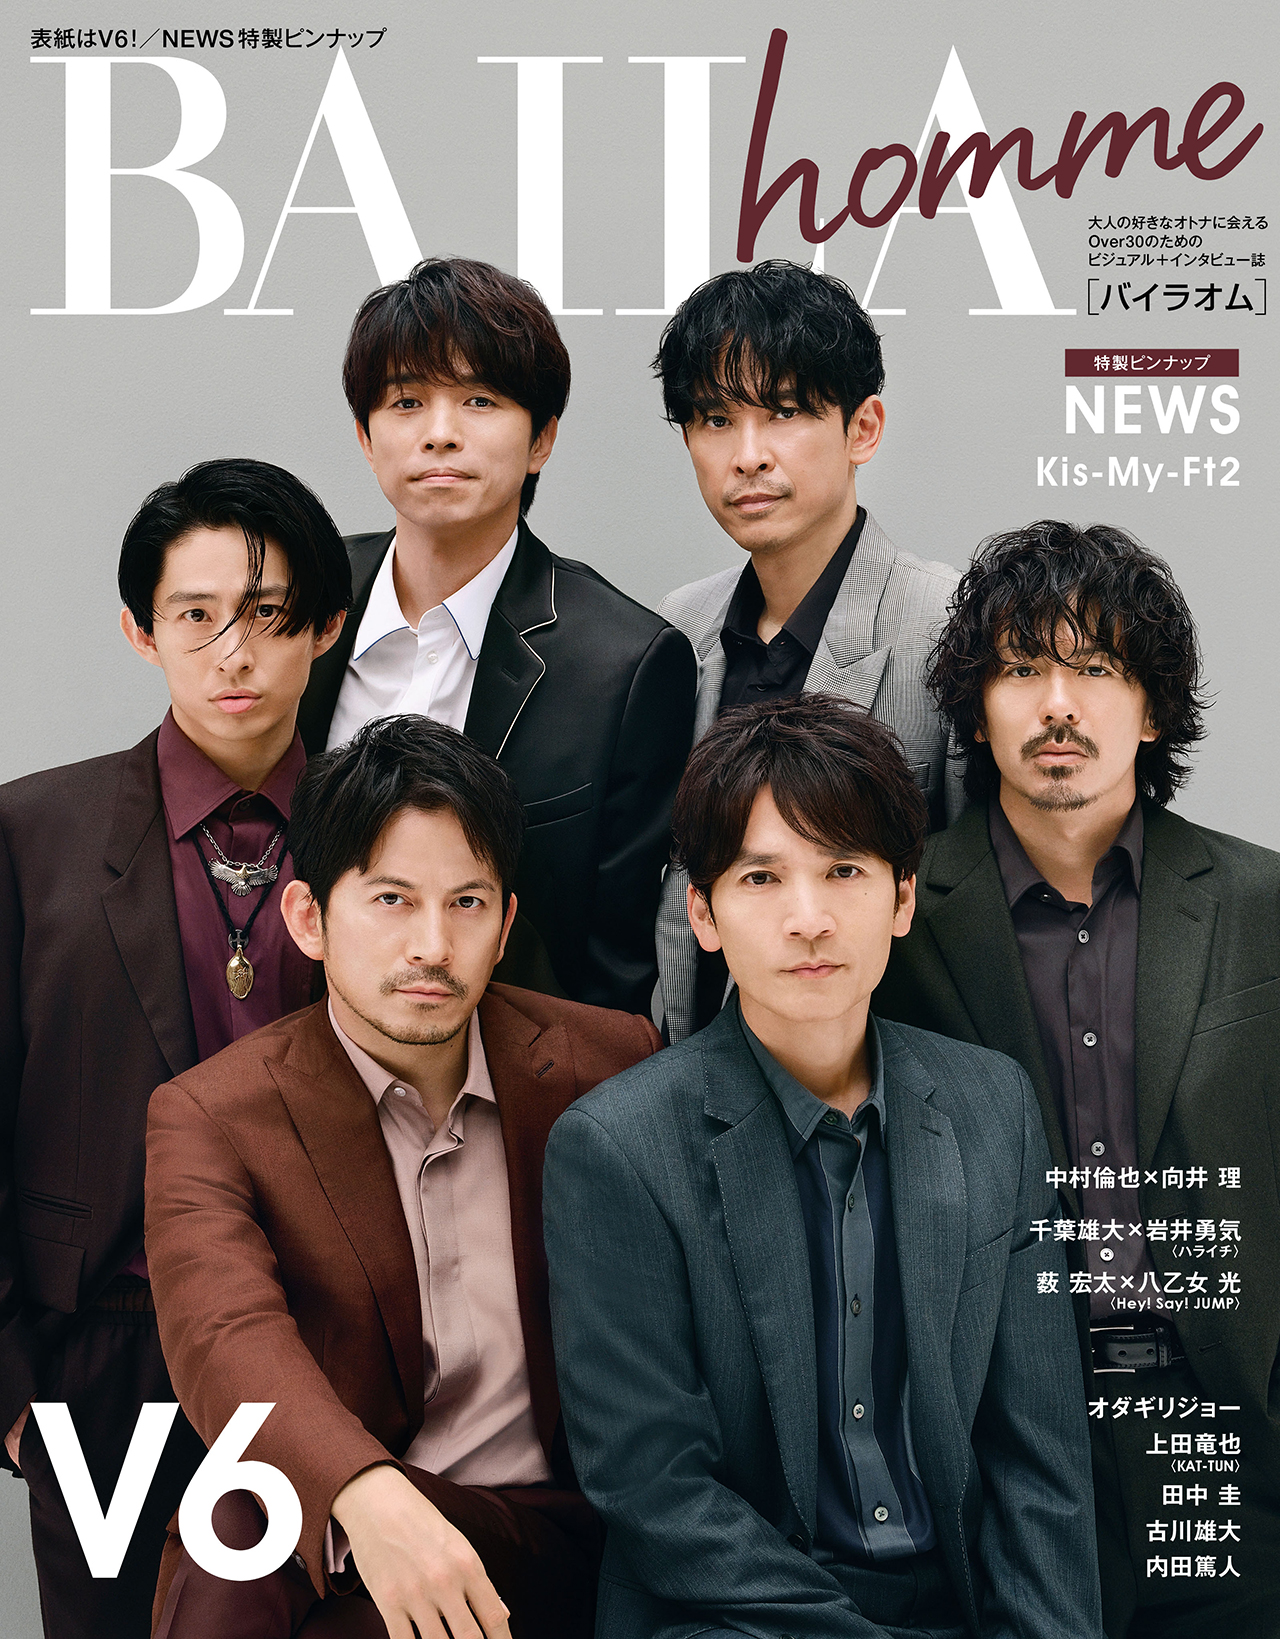 BAILAhomme表紙